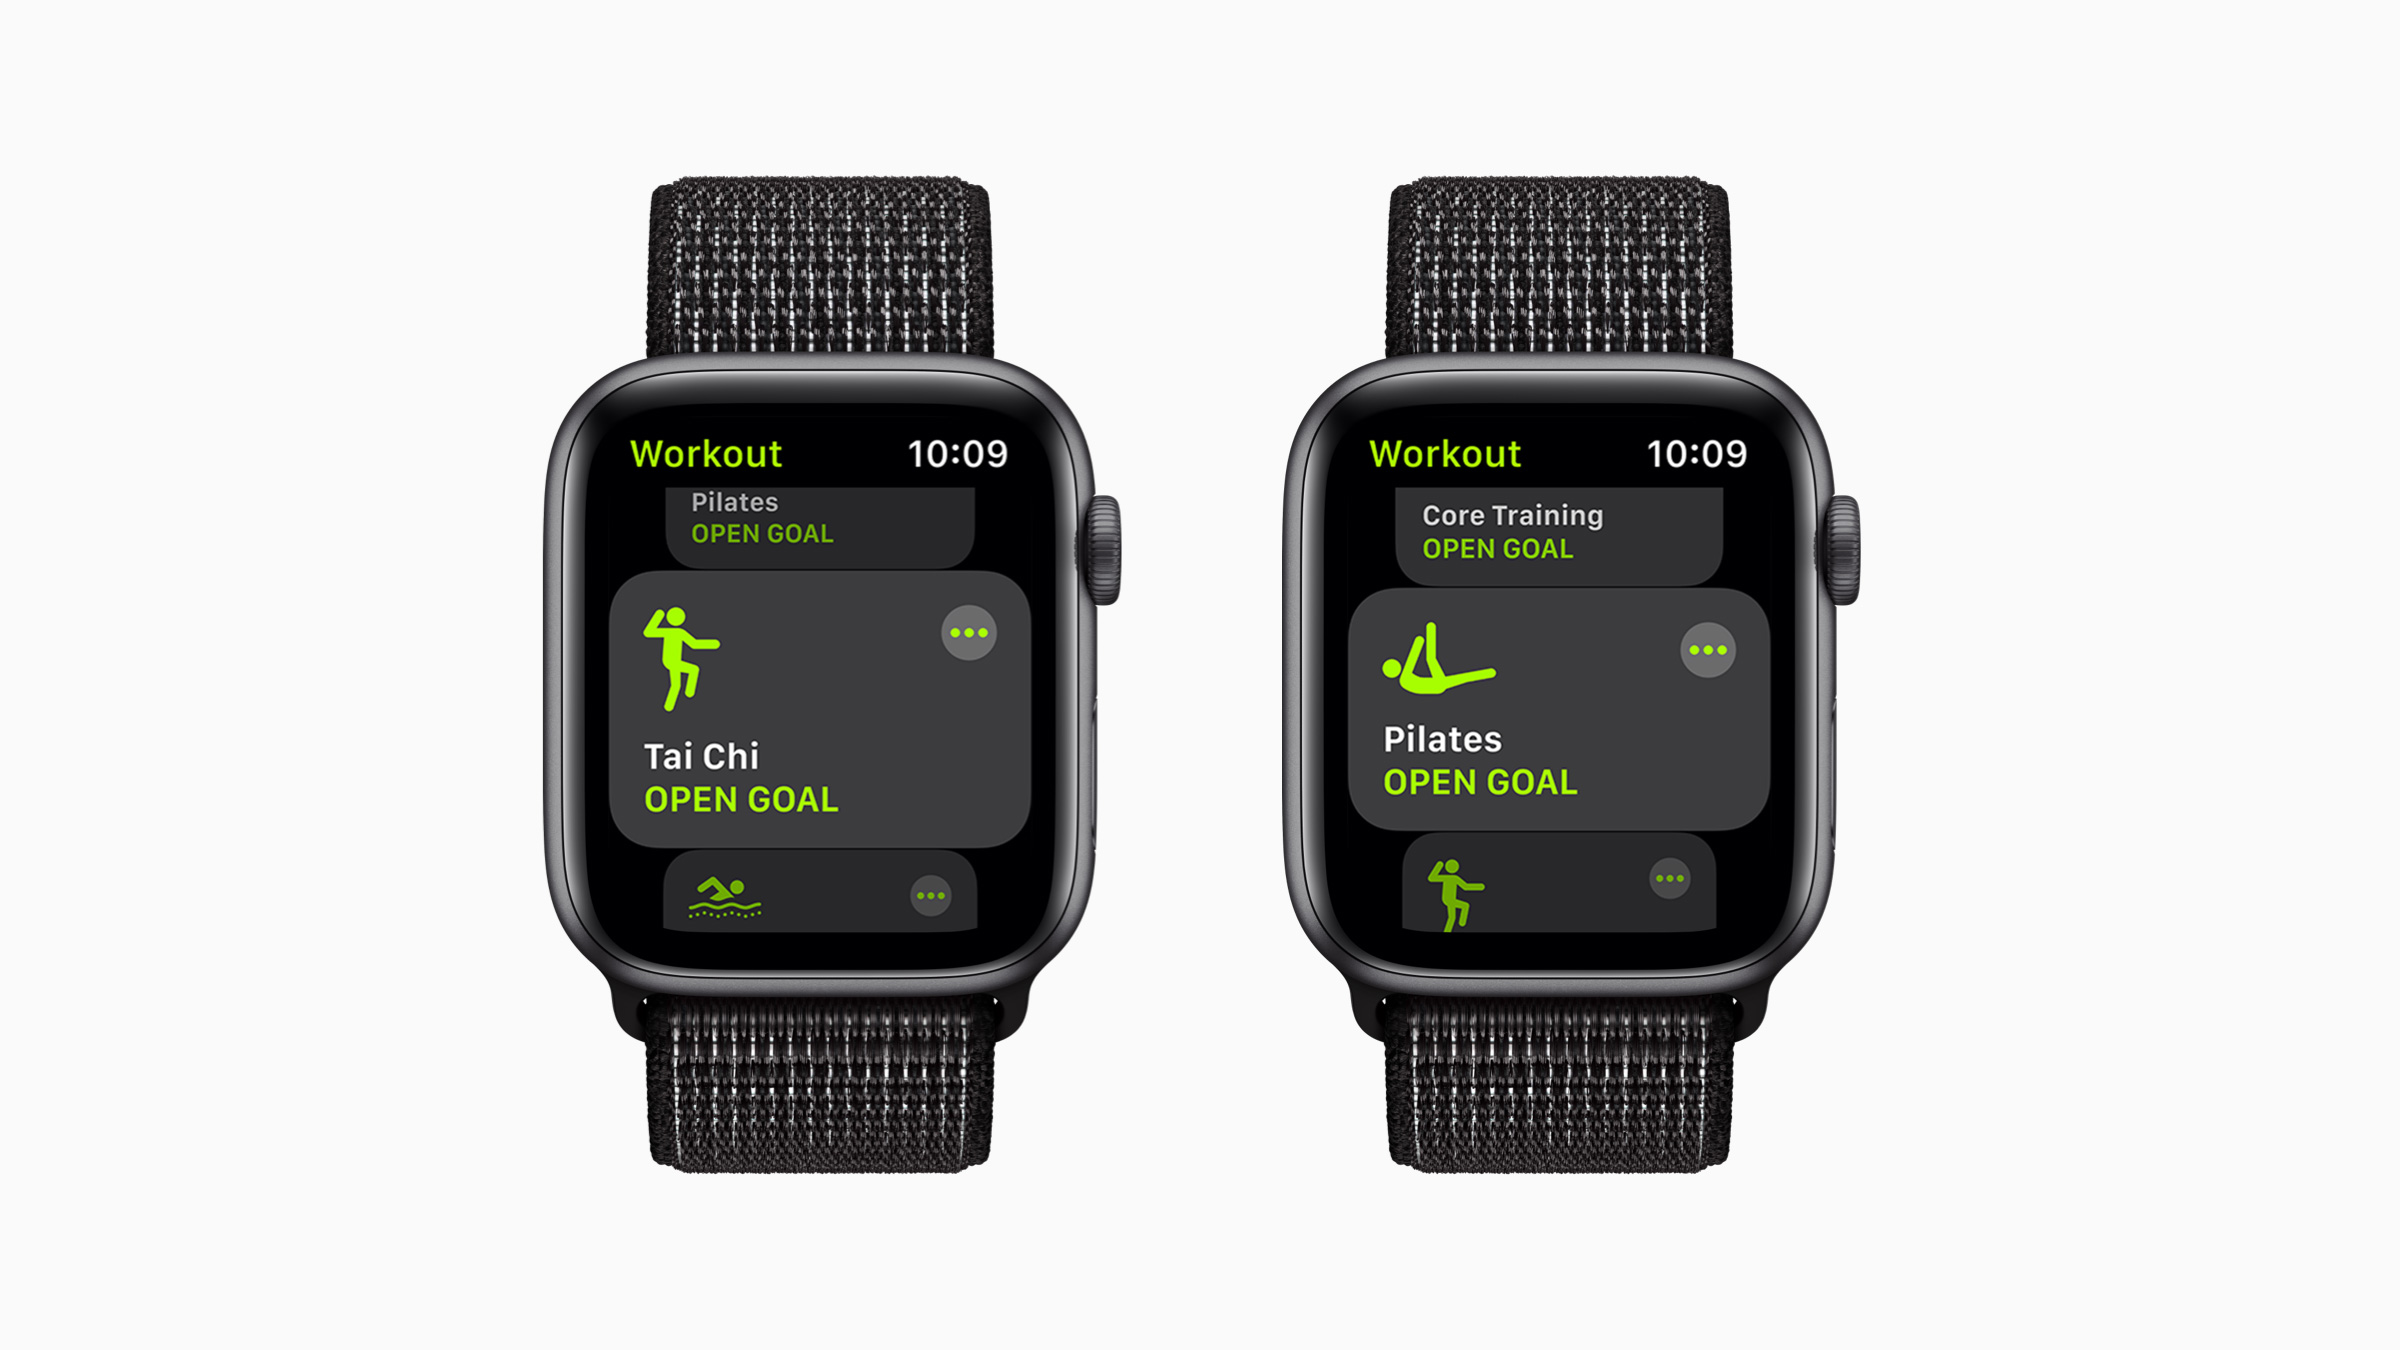 watchOS 8 workouts